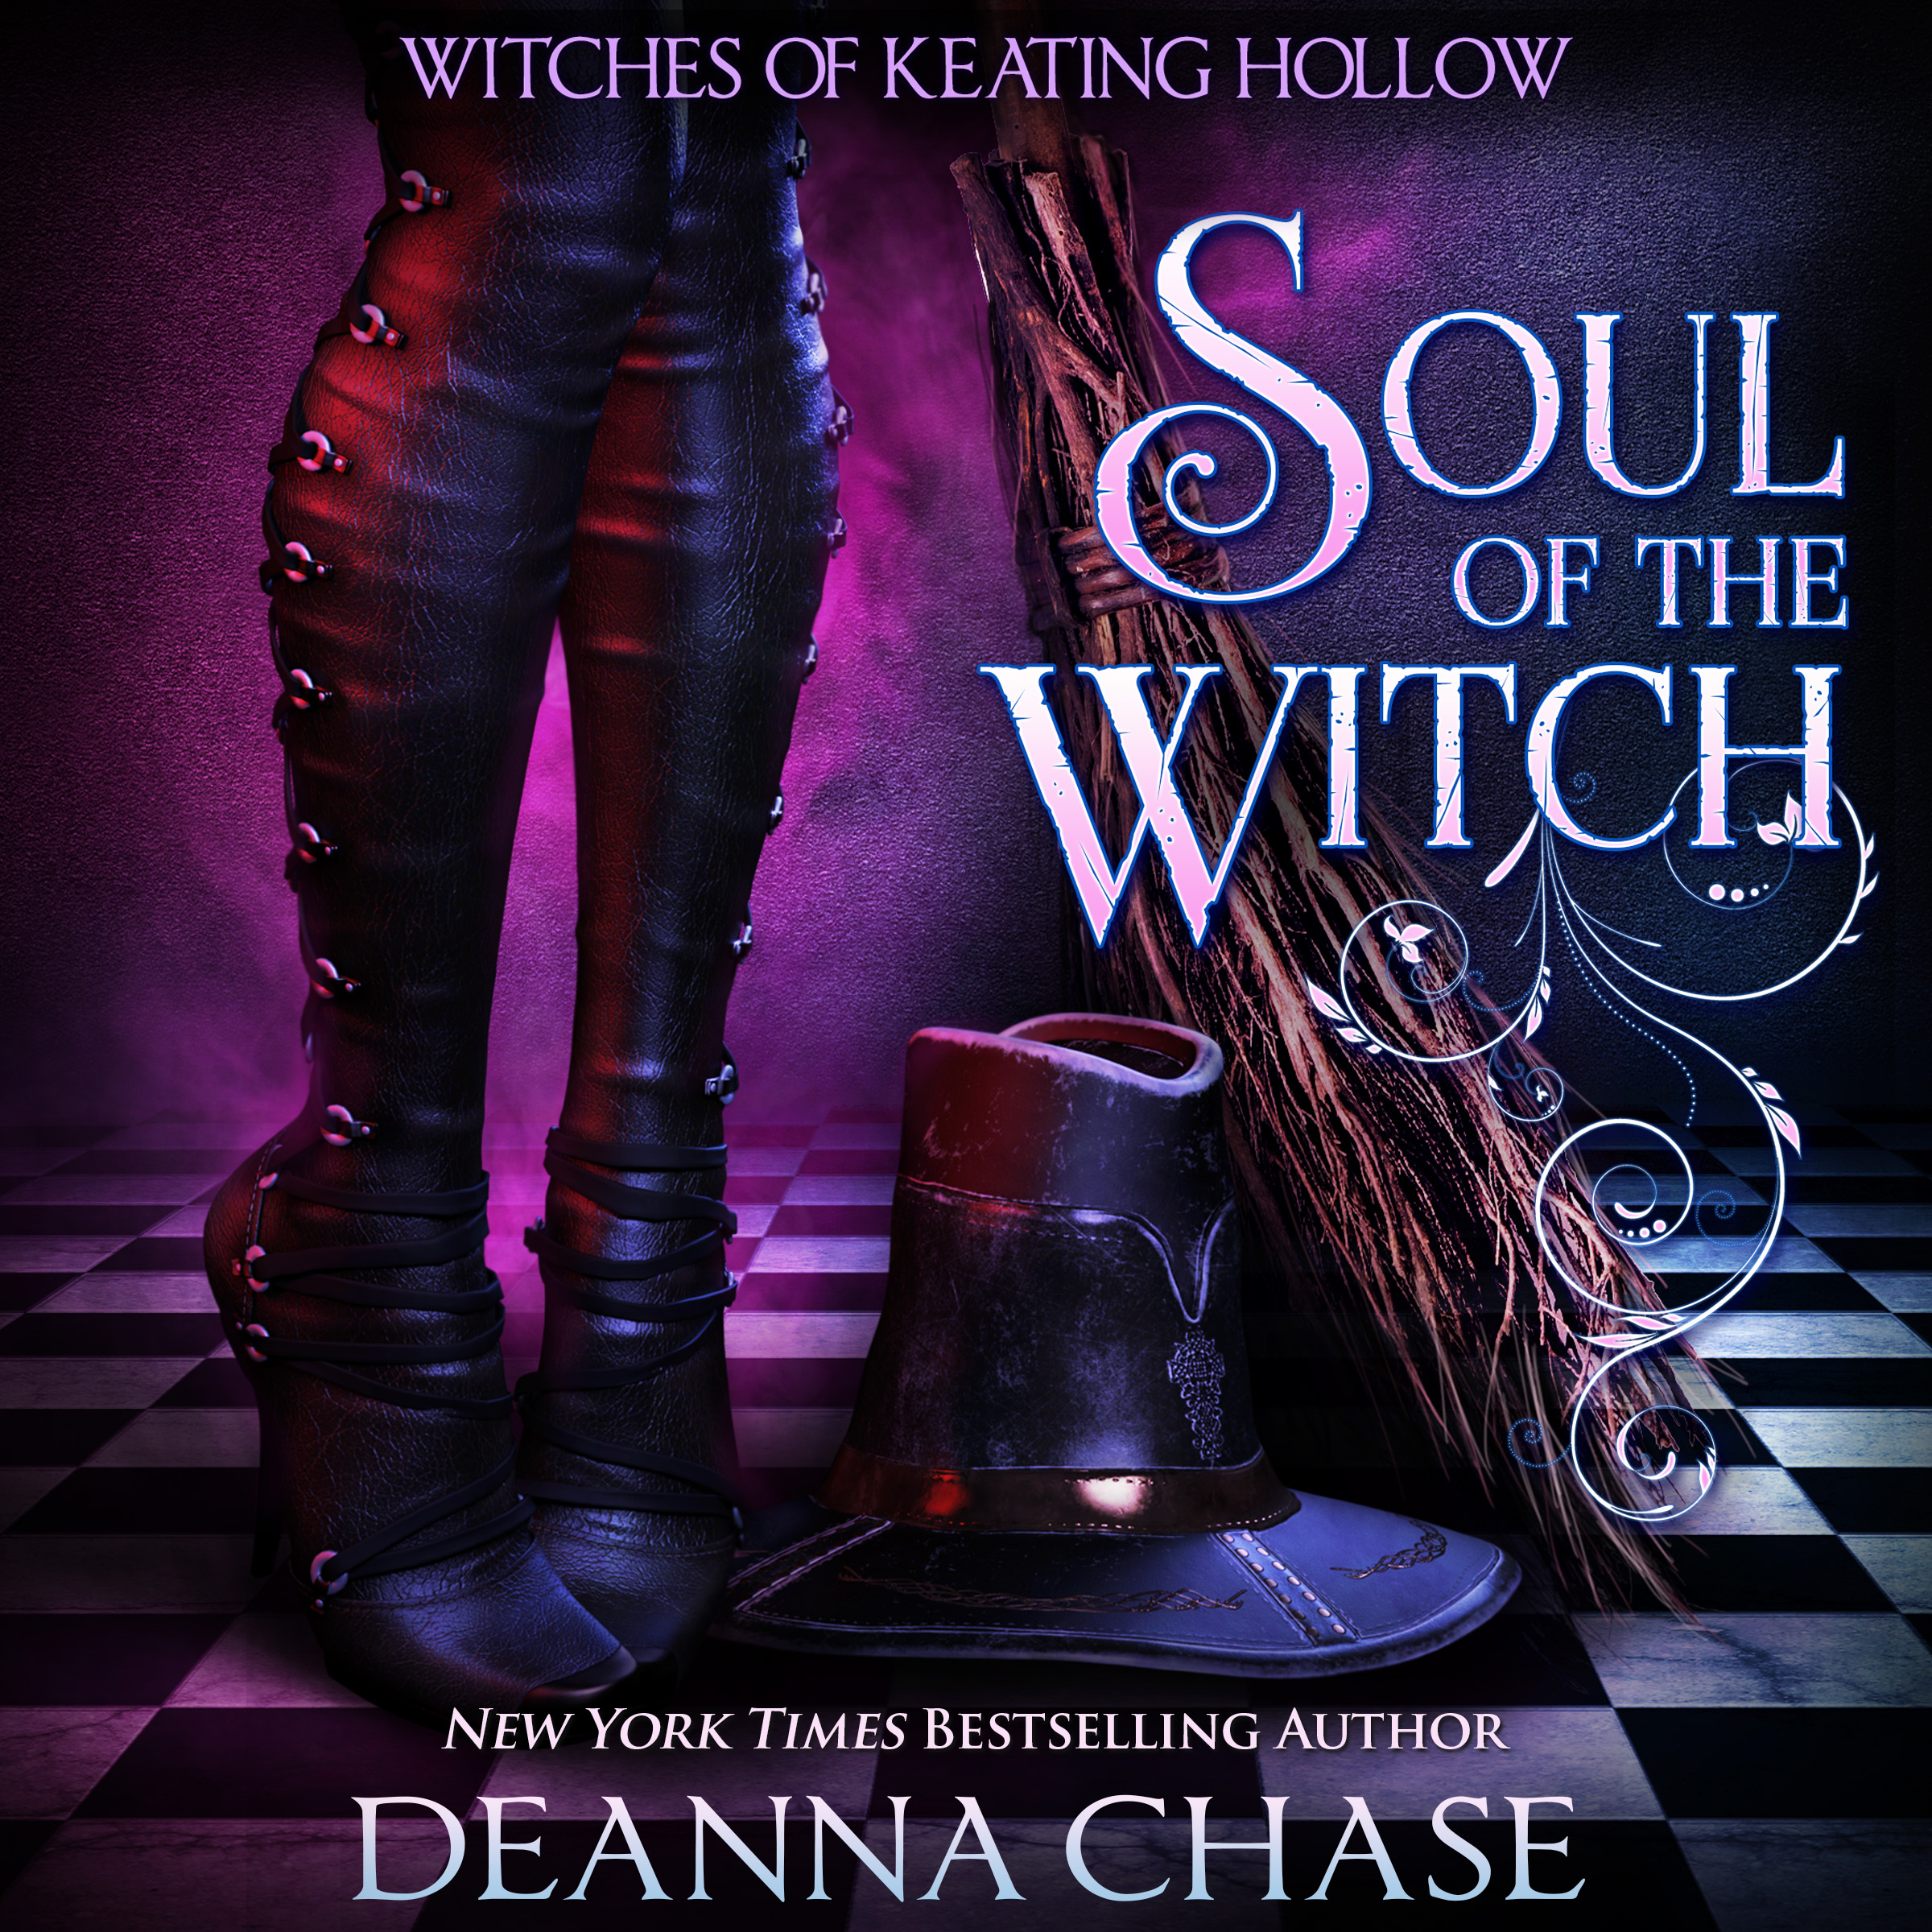 Soul of the Witch audiobook by Deanna Chase